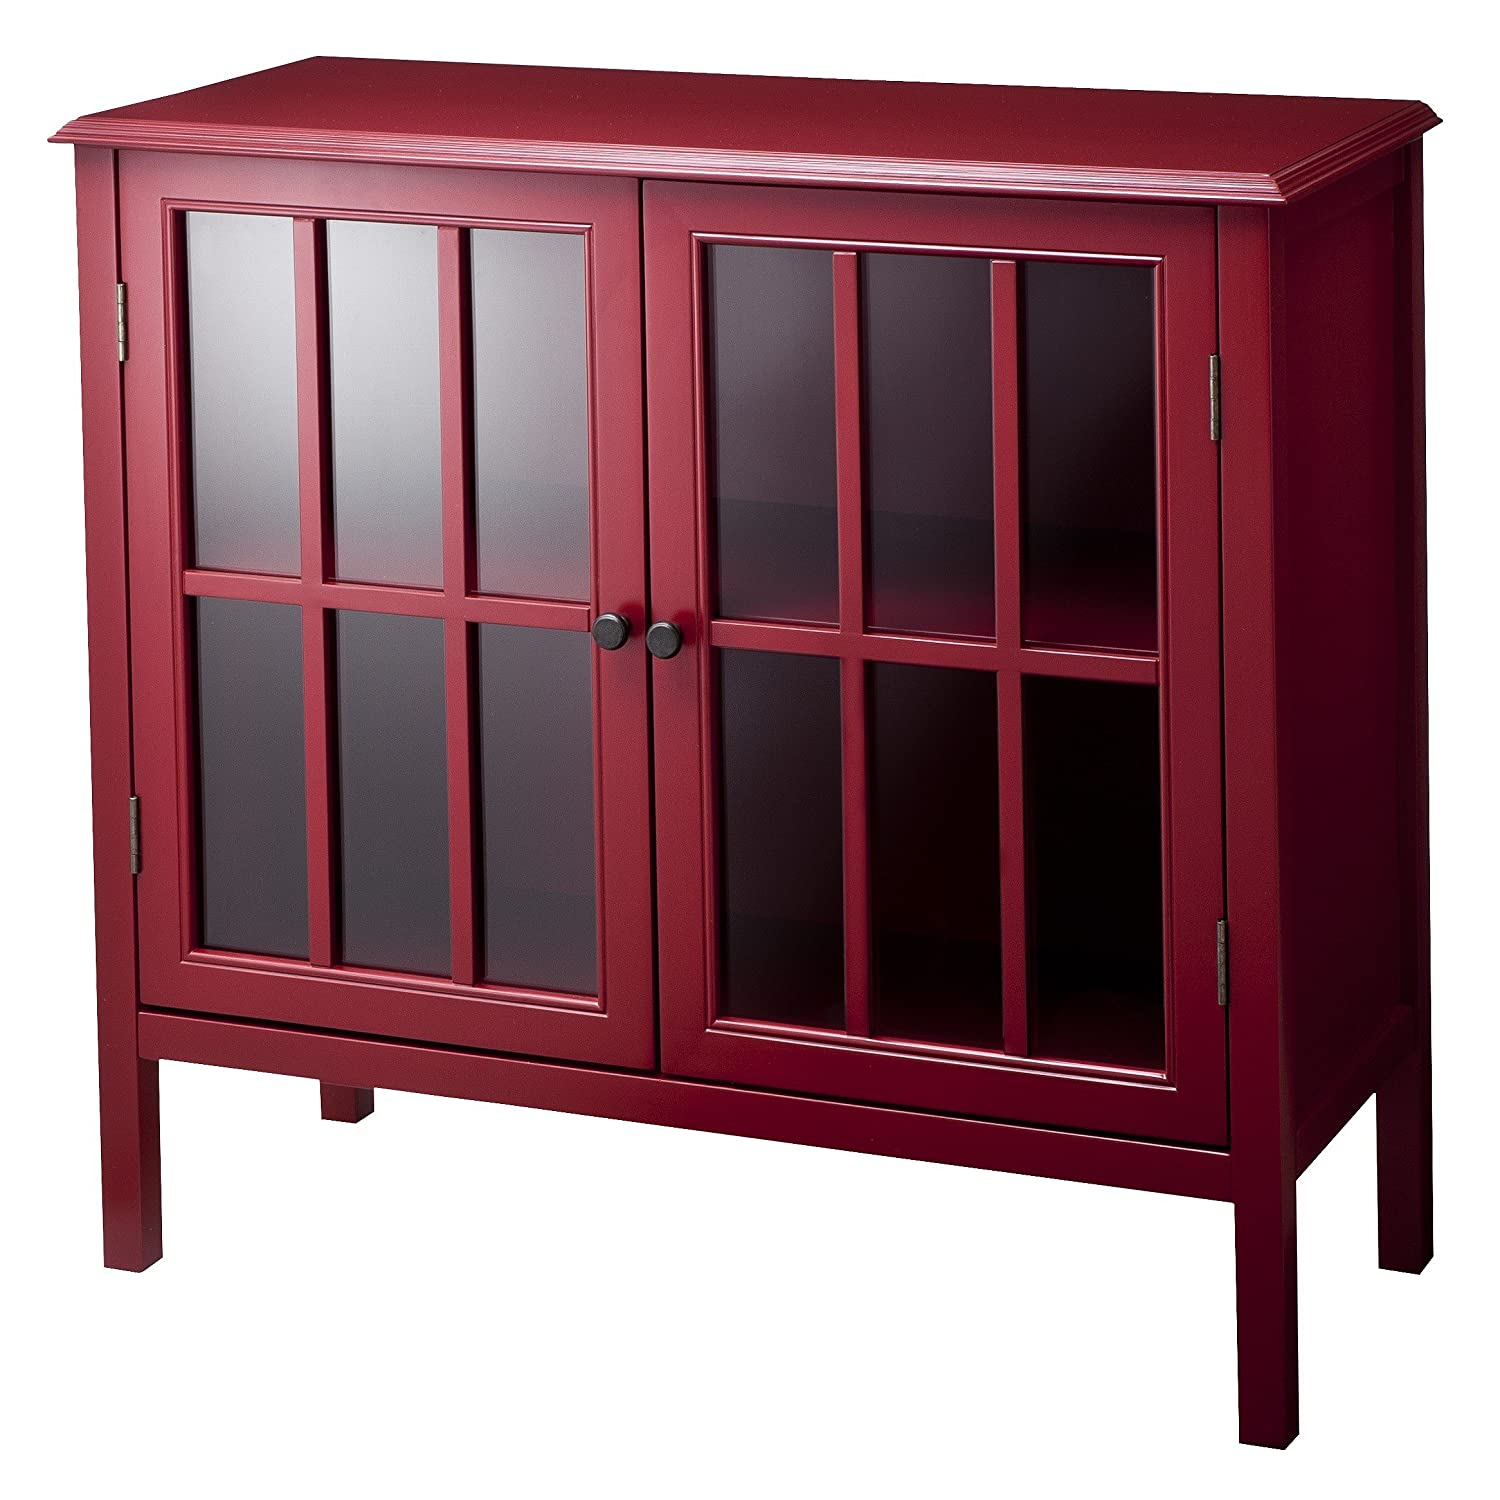 Amazon.com: Windham Threshold Cabinet - Red: Kitchen & Dining